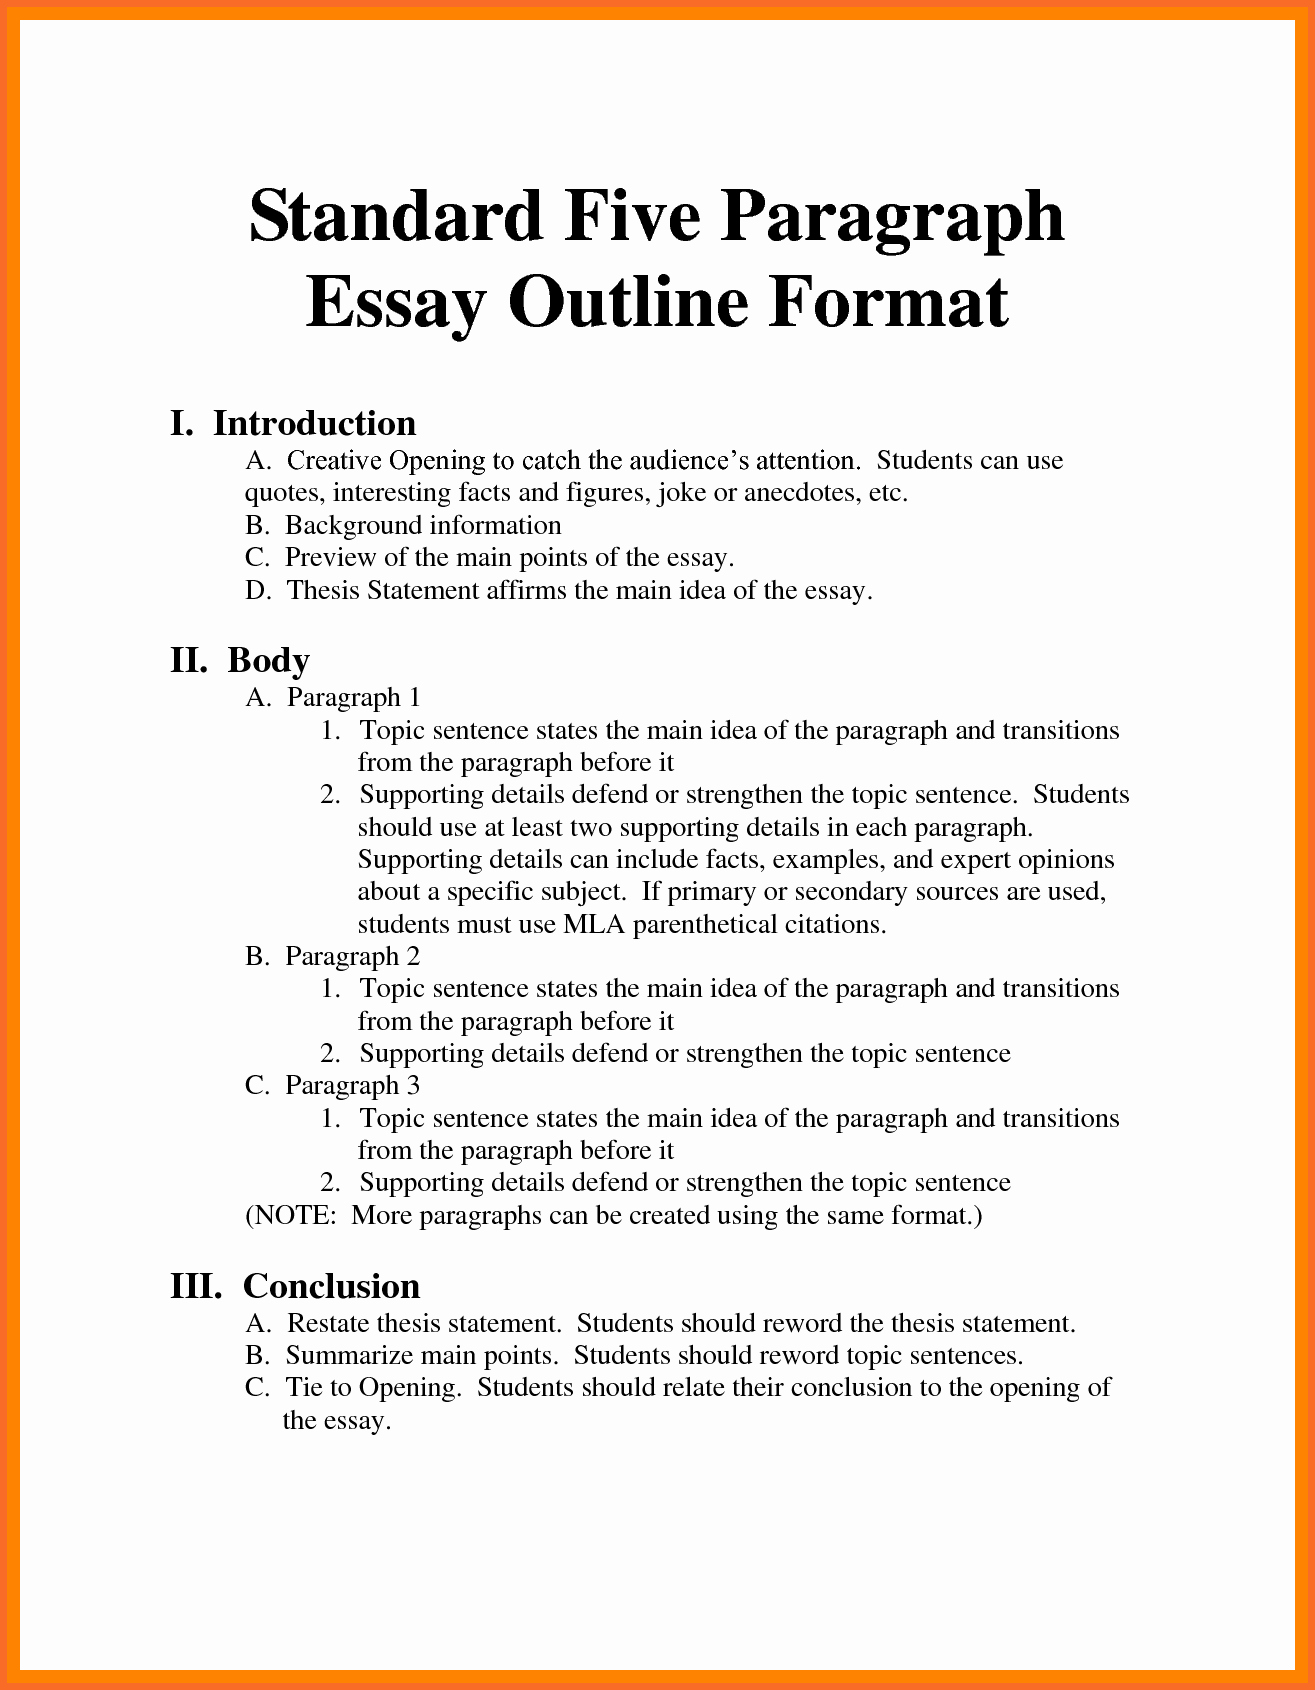 Mla format Research Paper Template Lovely Sample Outline Mla format Research Paper Bamboodownunder